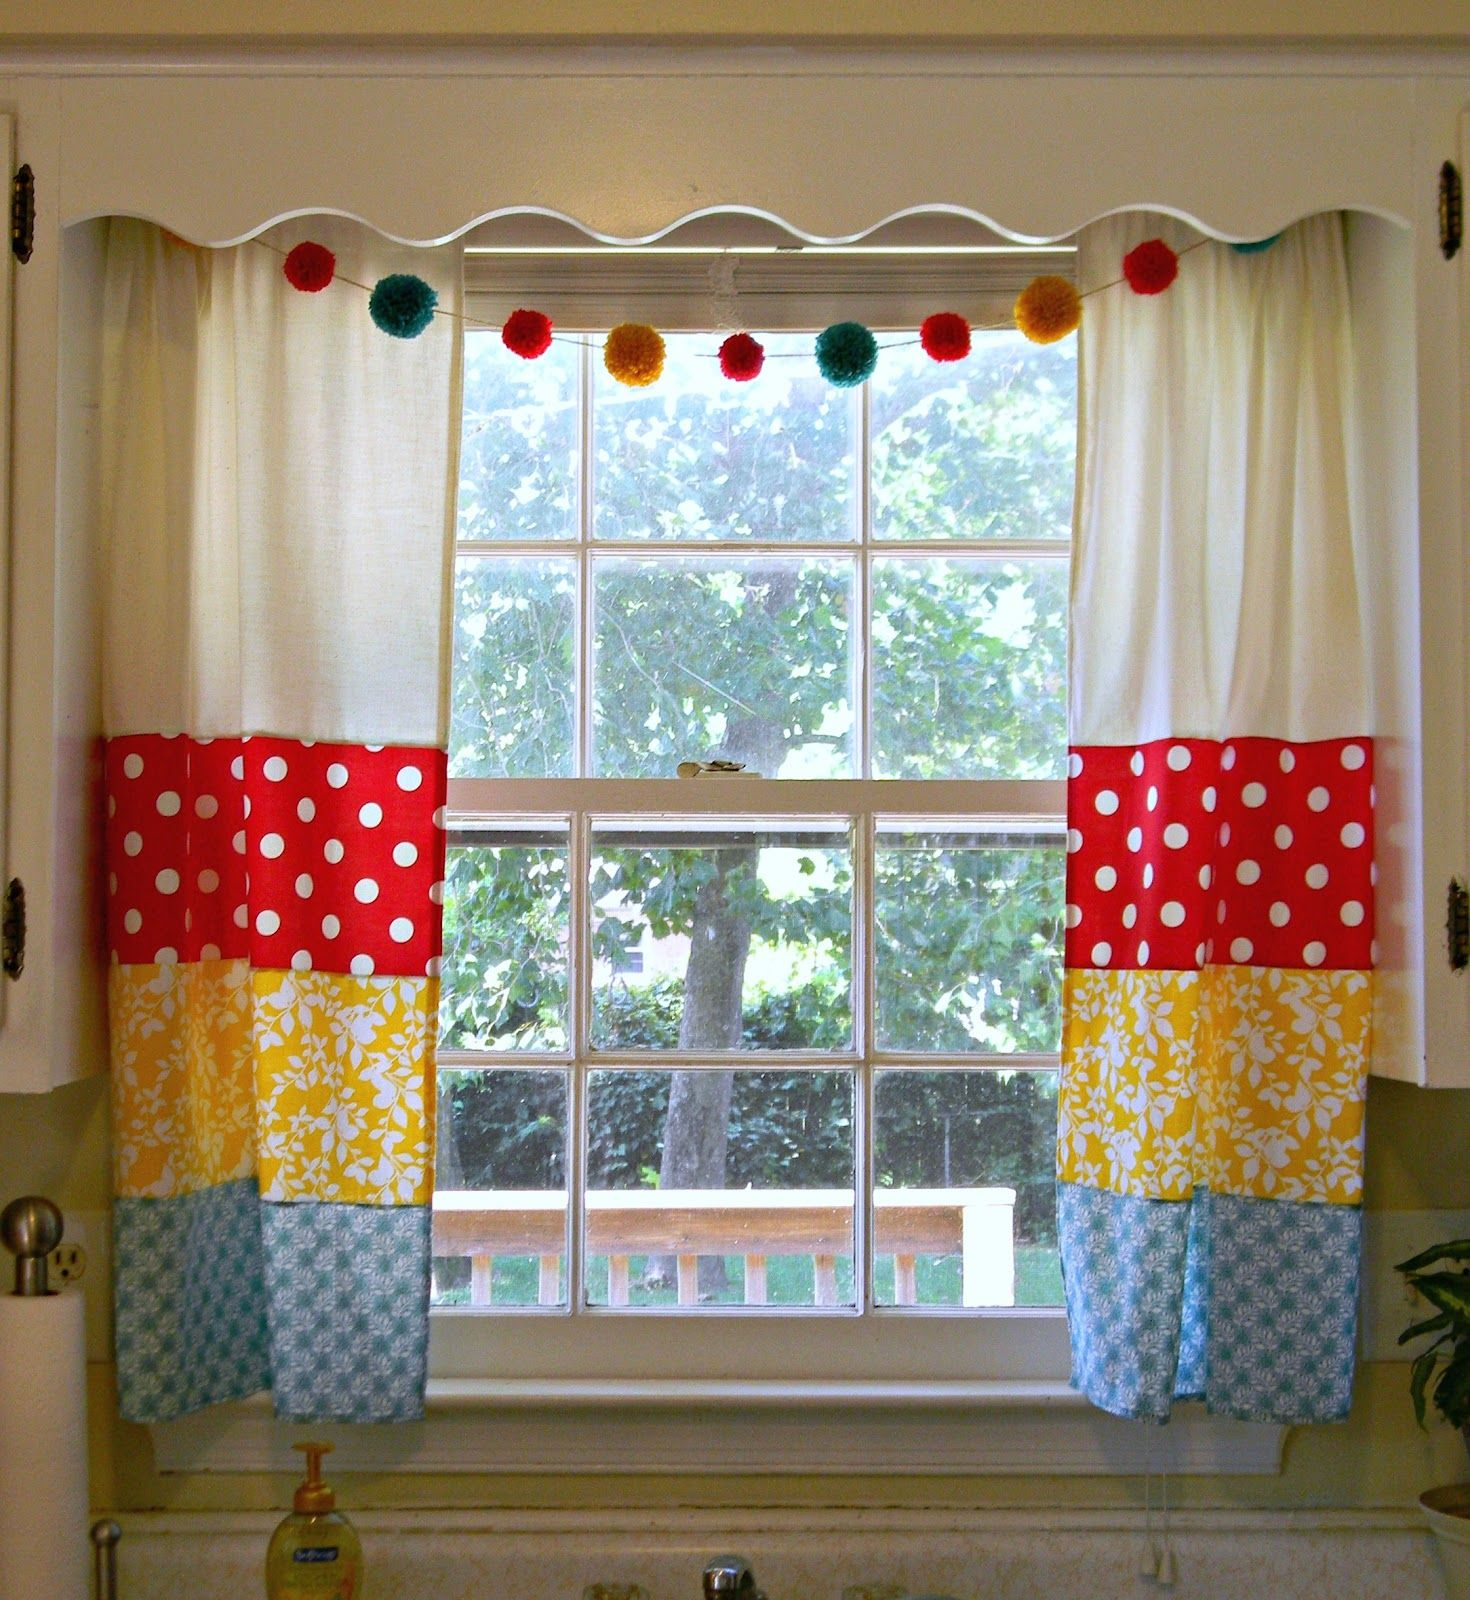 Kitchen cafe curtain patterns - Using Curtains To Accessorize Your Kitchen Interior Design Each Person Favors A Different Method To Accessorize His Kitchen Some People Like To Have